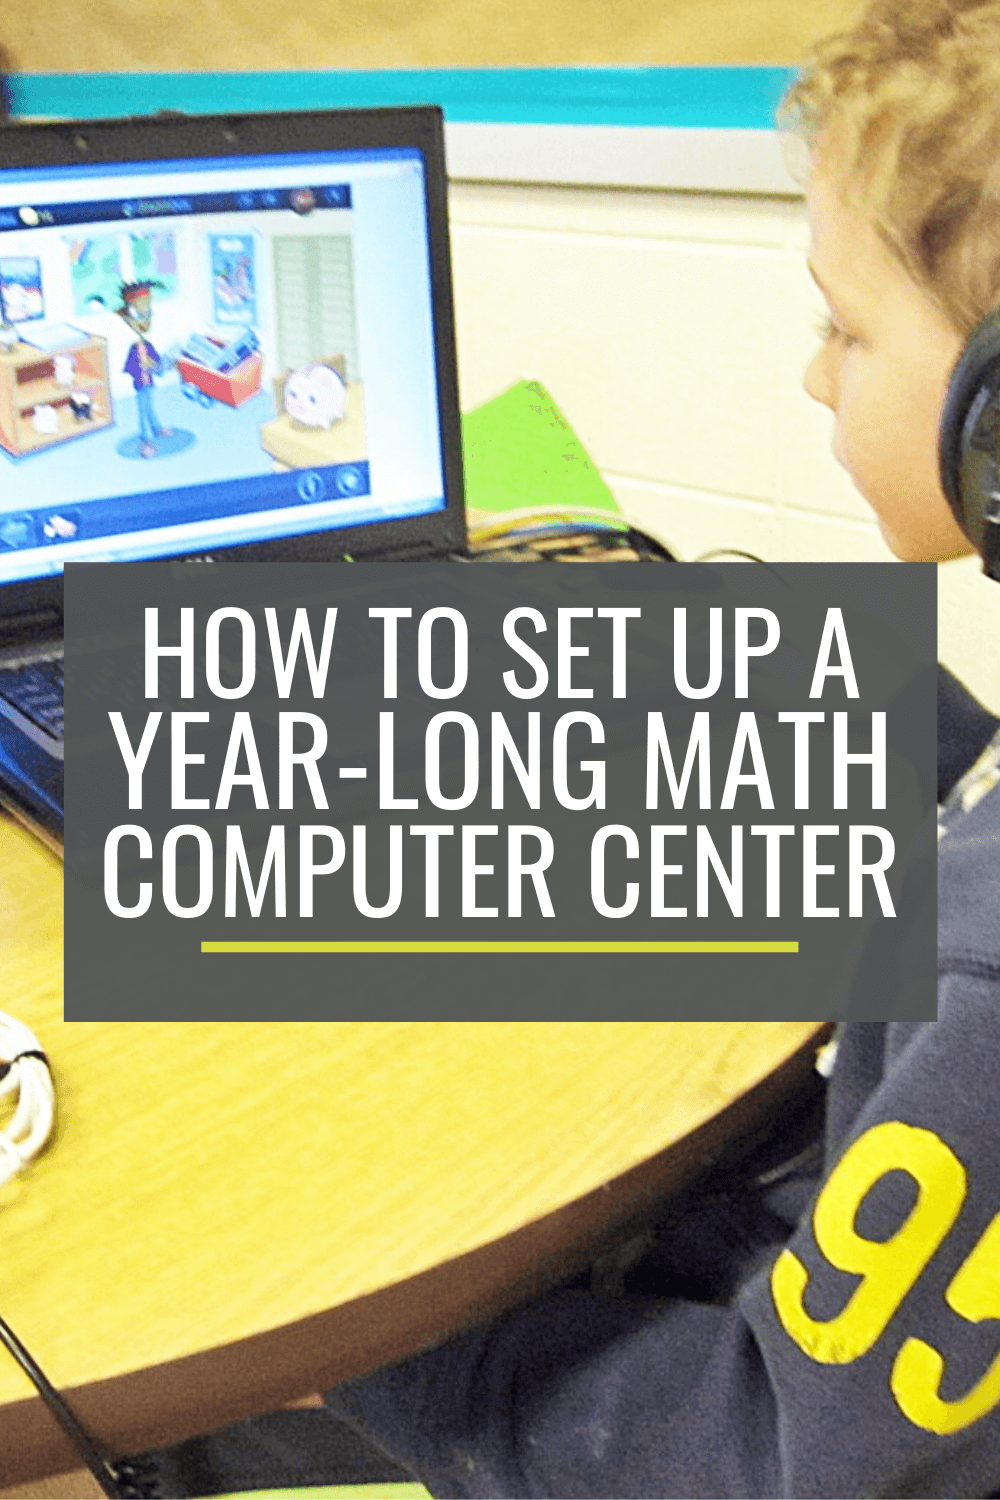 How to Set Up a Year-Long Math Computer Center